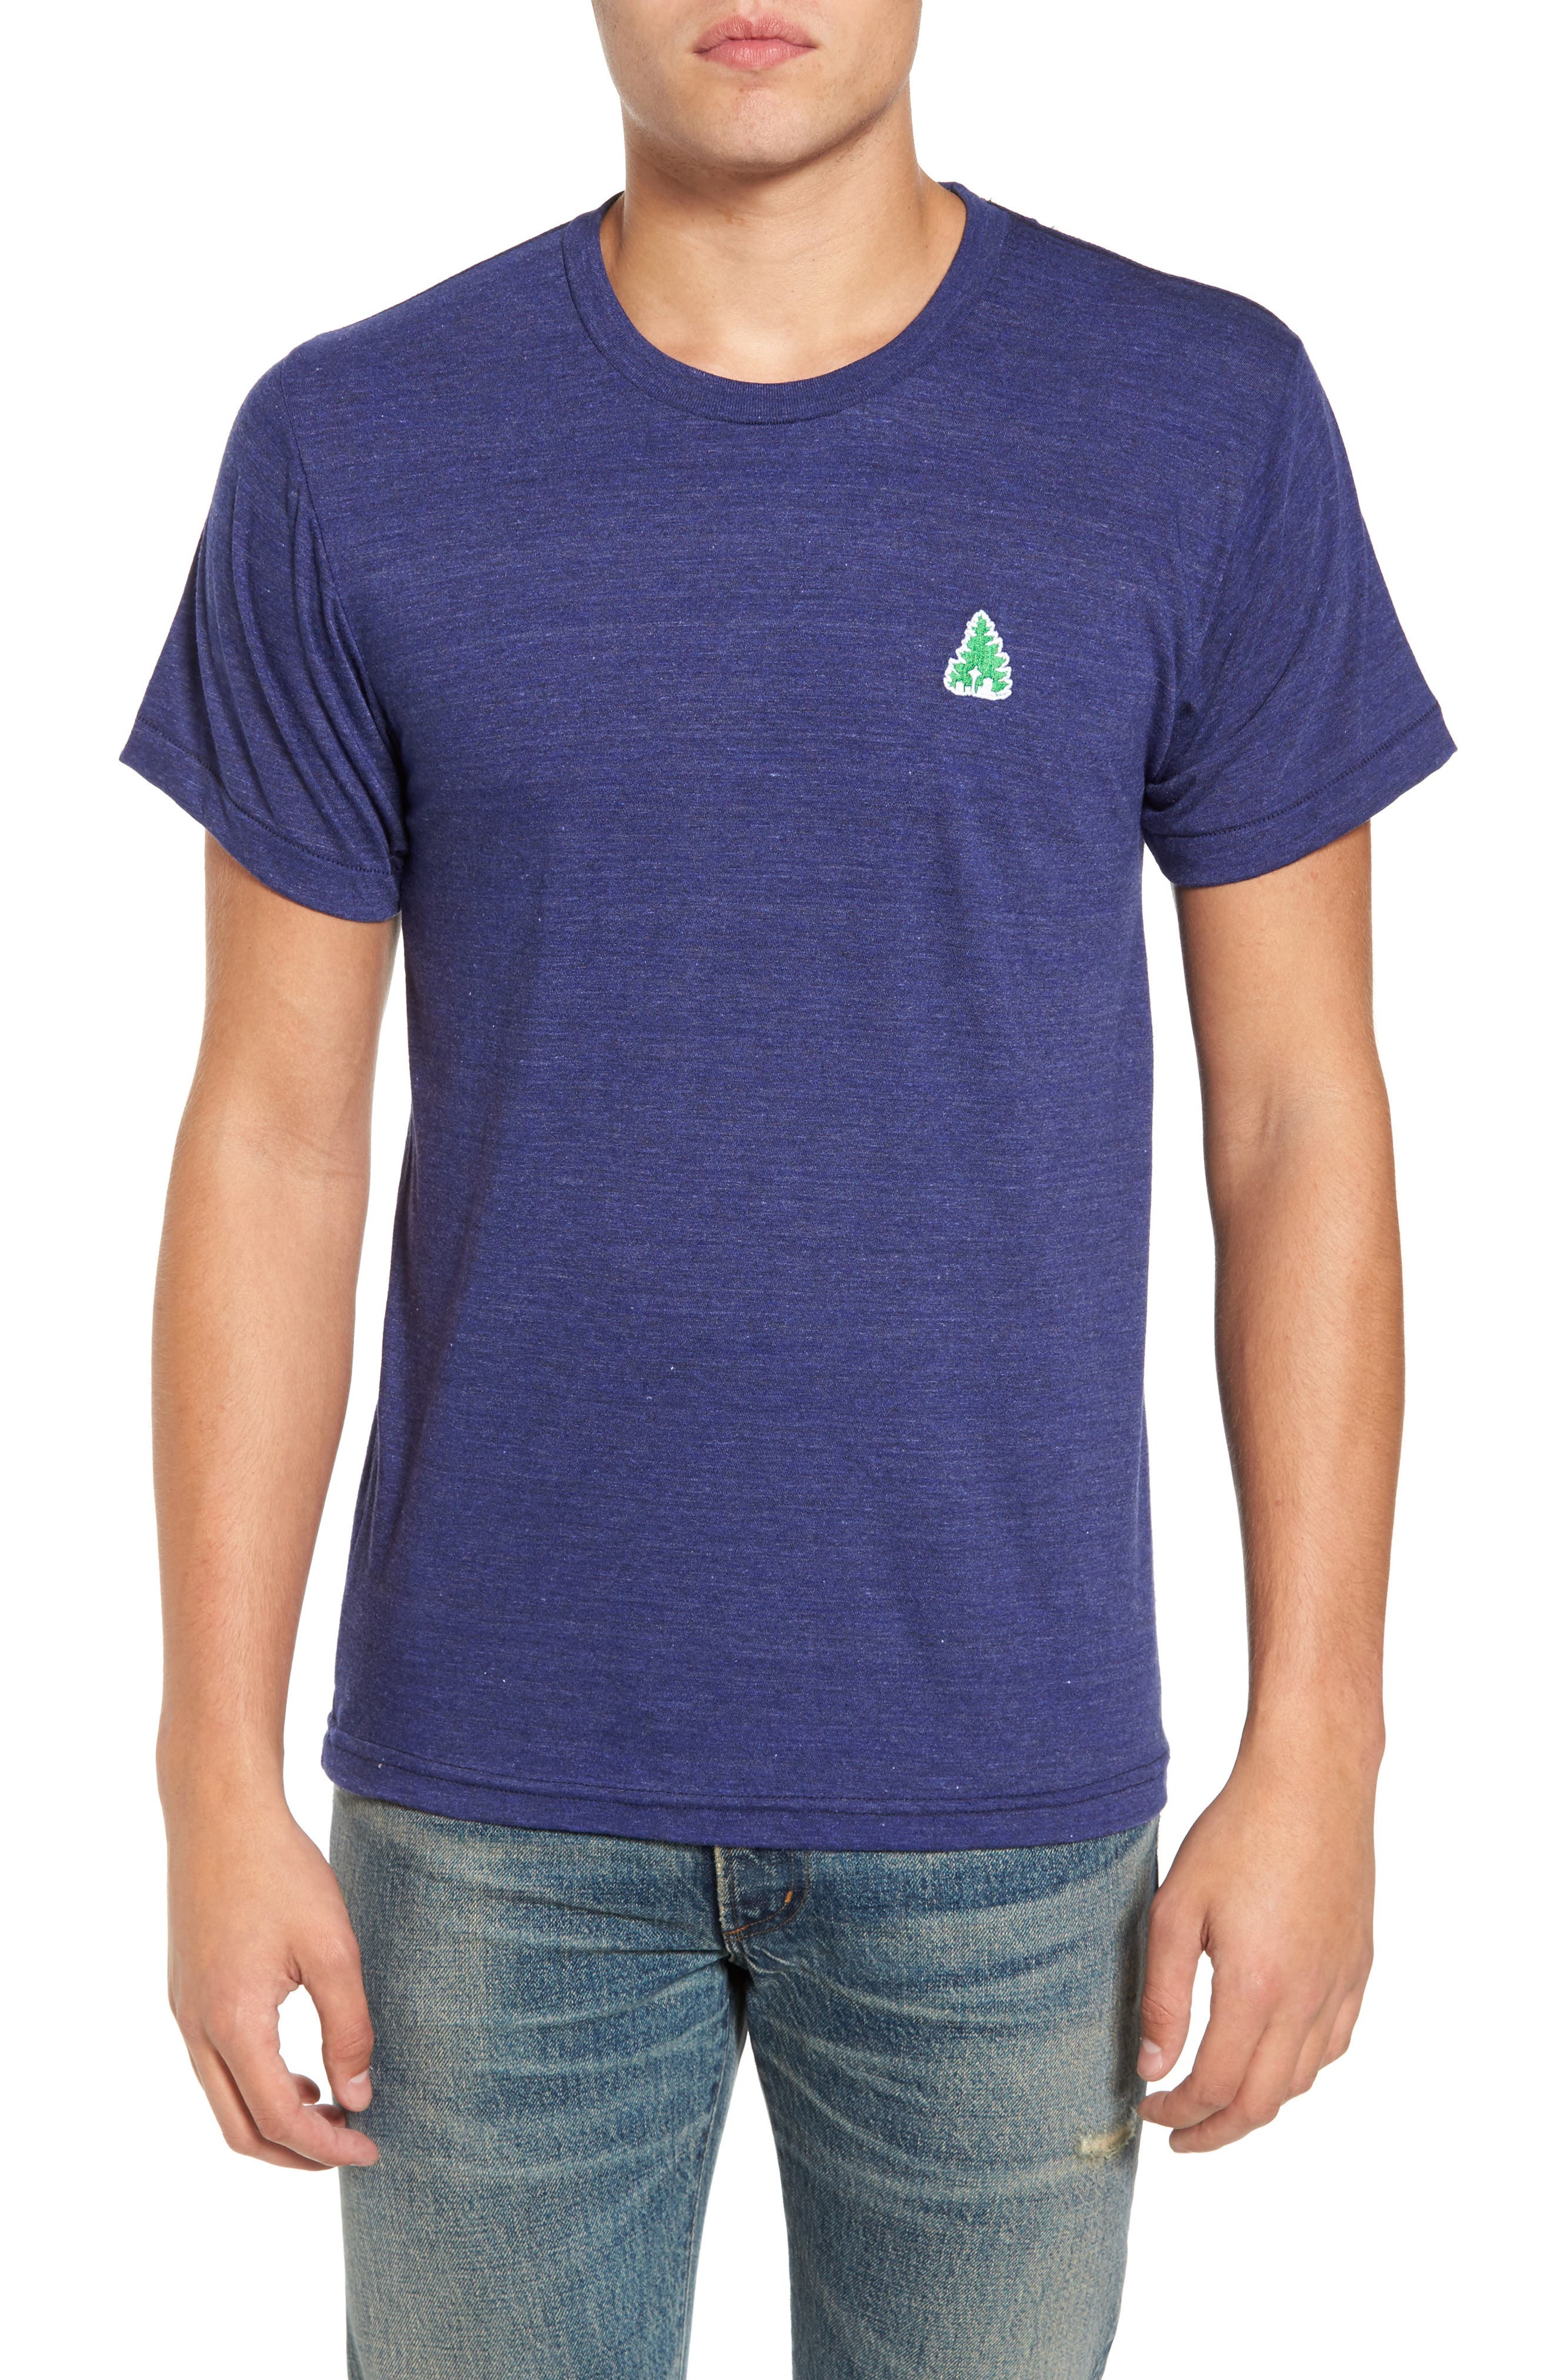 Johnny Tree Embroidered T-Shirt,                             Main thumbnail 1, color,                             408